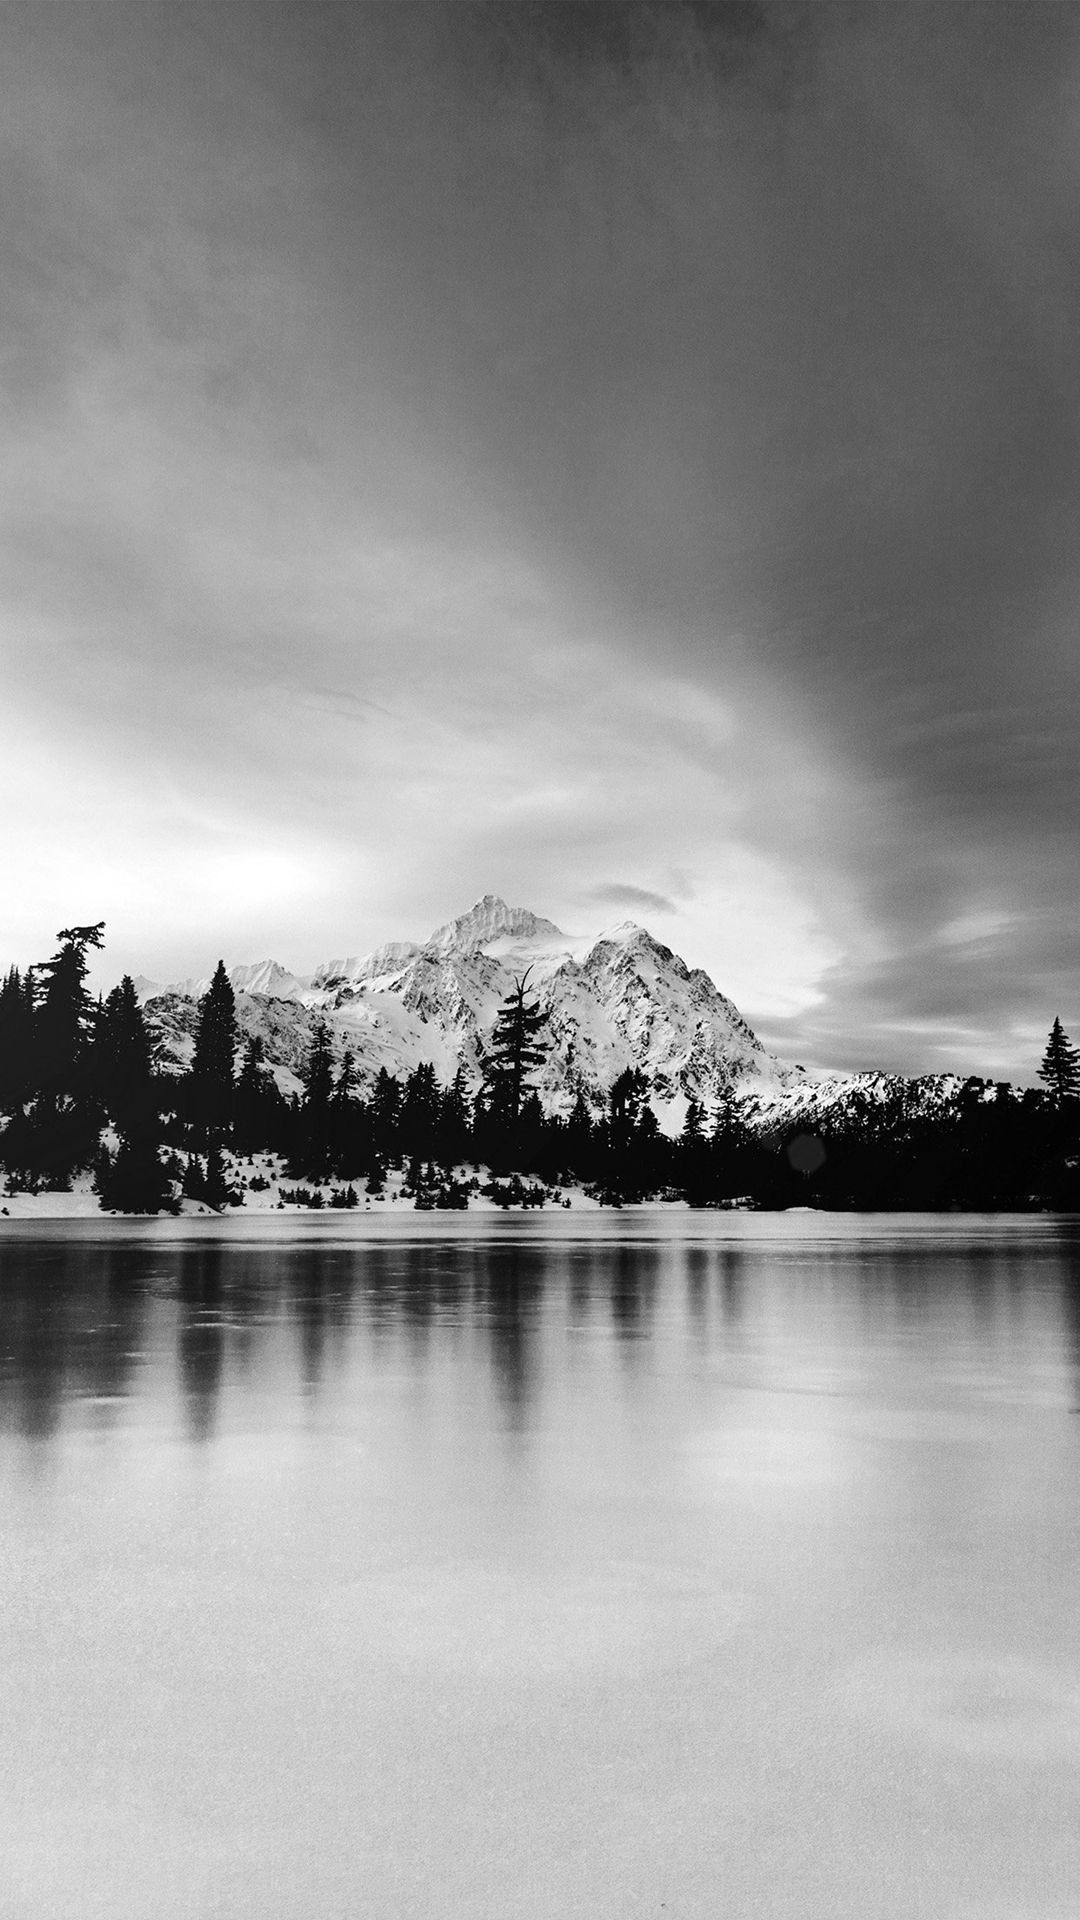 Frozen Lake Winter Snow Wood Forest Cold Bw Dark Iphone 8 Wallpapers Black And White Wallpaper Iphone Black And White Wallpaper White Iphone